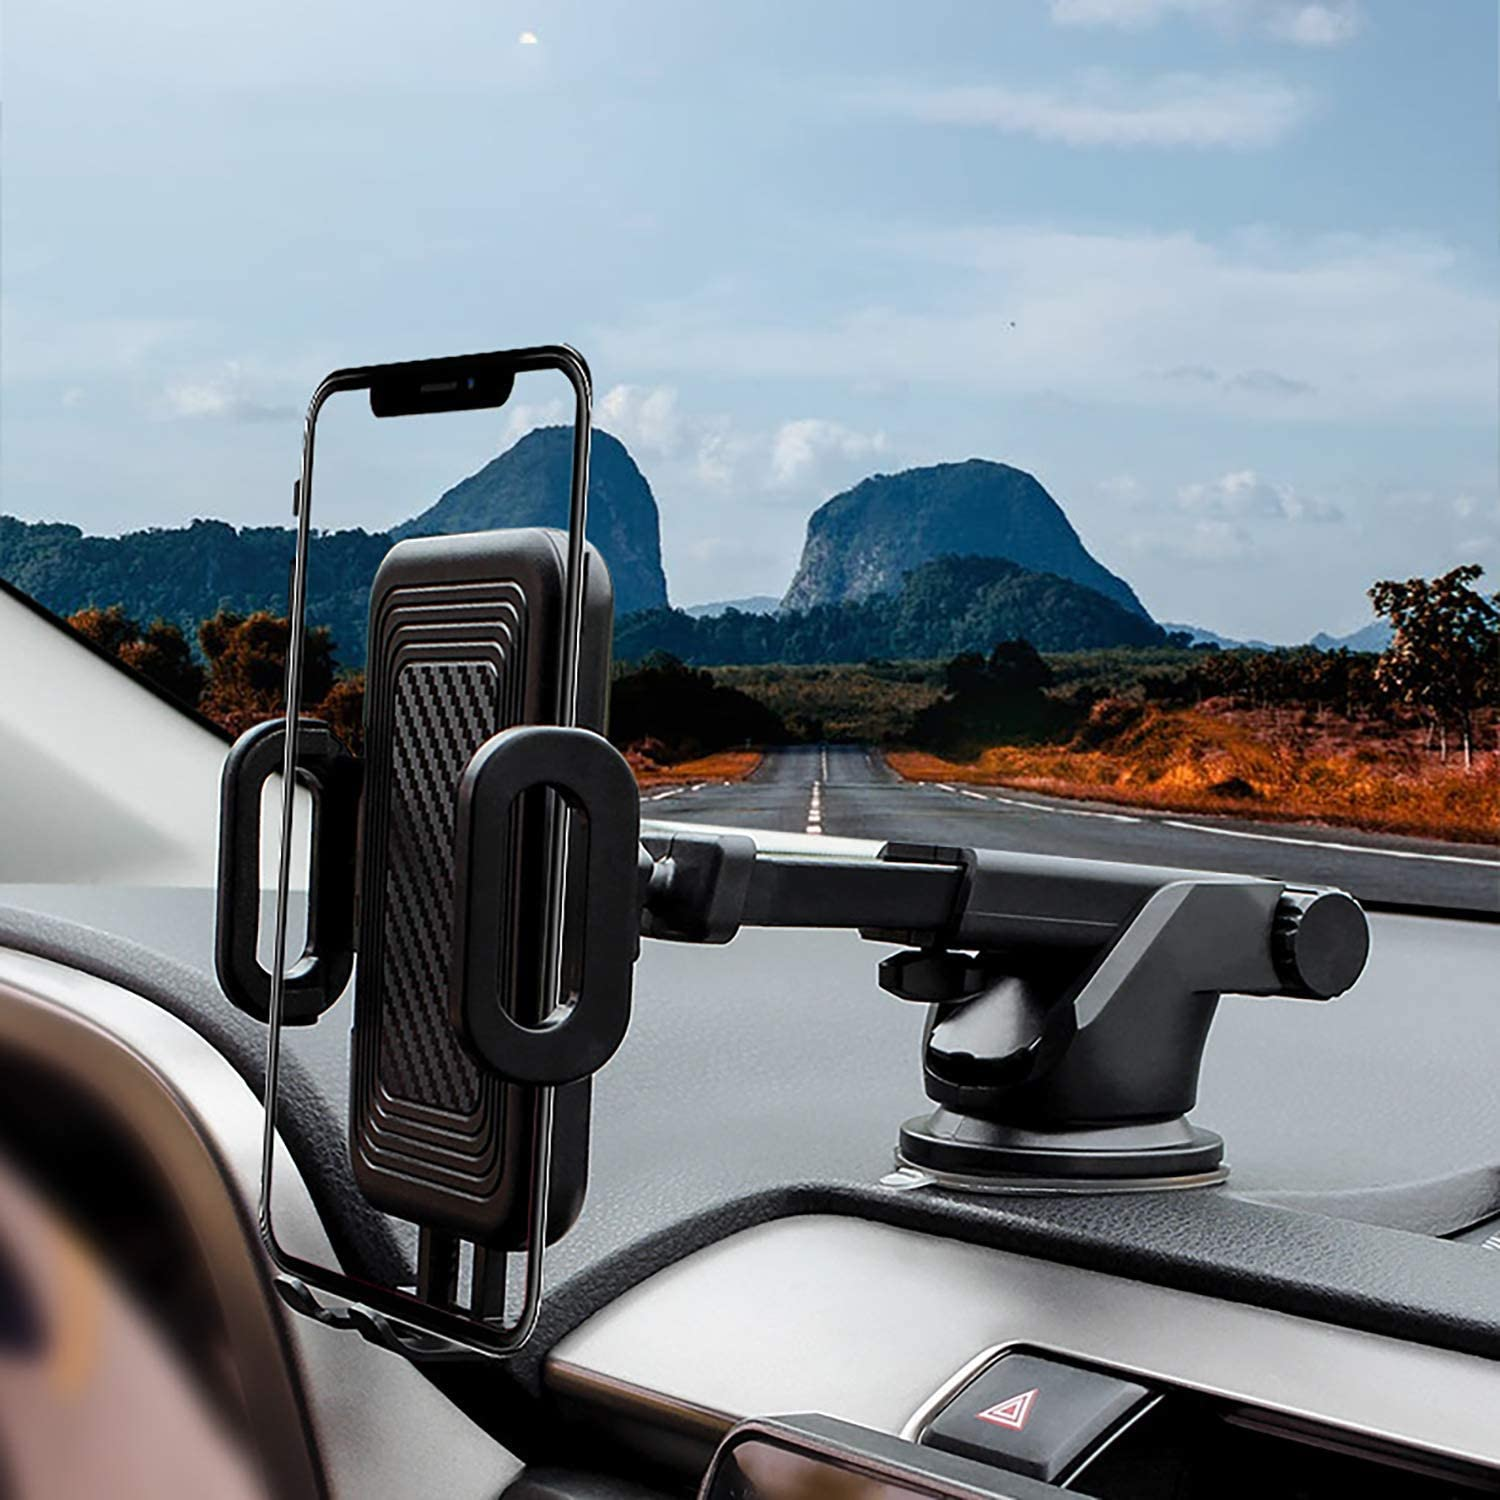 Car Phone Mount NICEKEY Cell Phone Holder for Car Dashboard Windshield Universal Cell Phone Mount with Strong Sticky Suction Cup Compatible for iPhone 11 Pro X 8 7 6S 6 Samsung Galaxy Smartphone